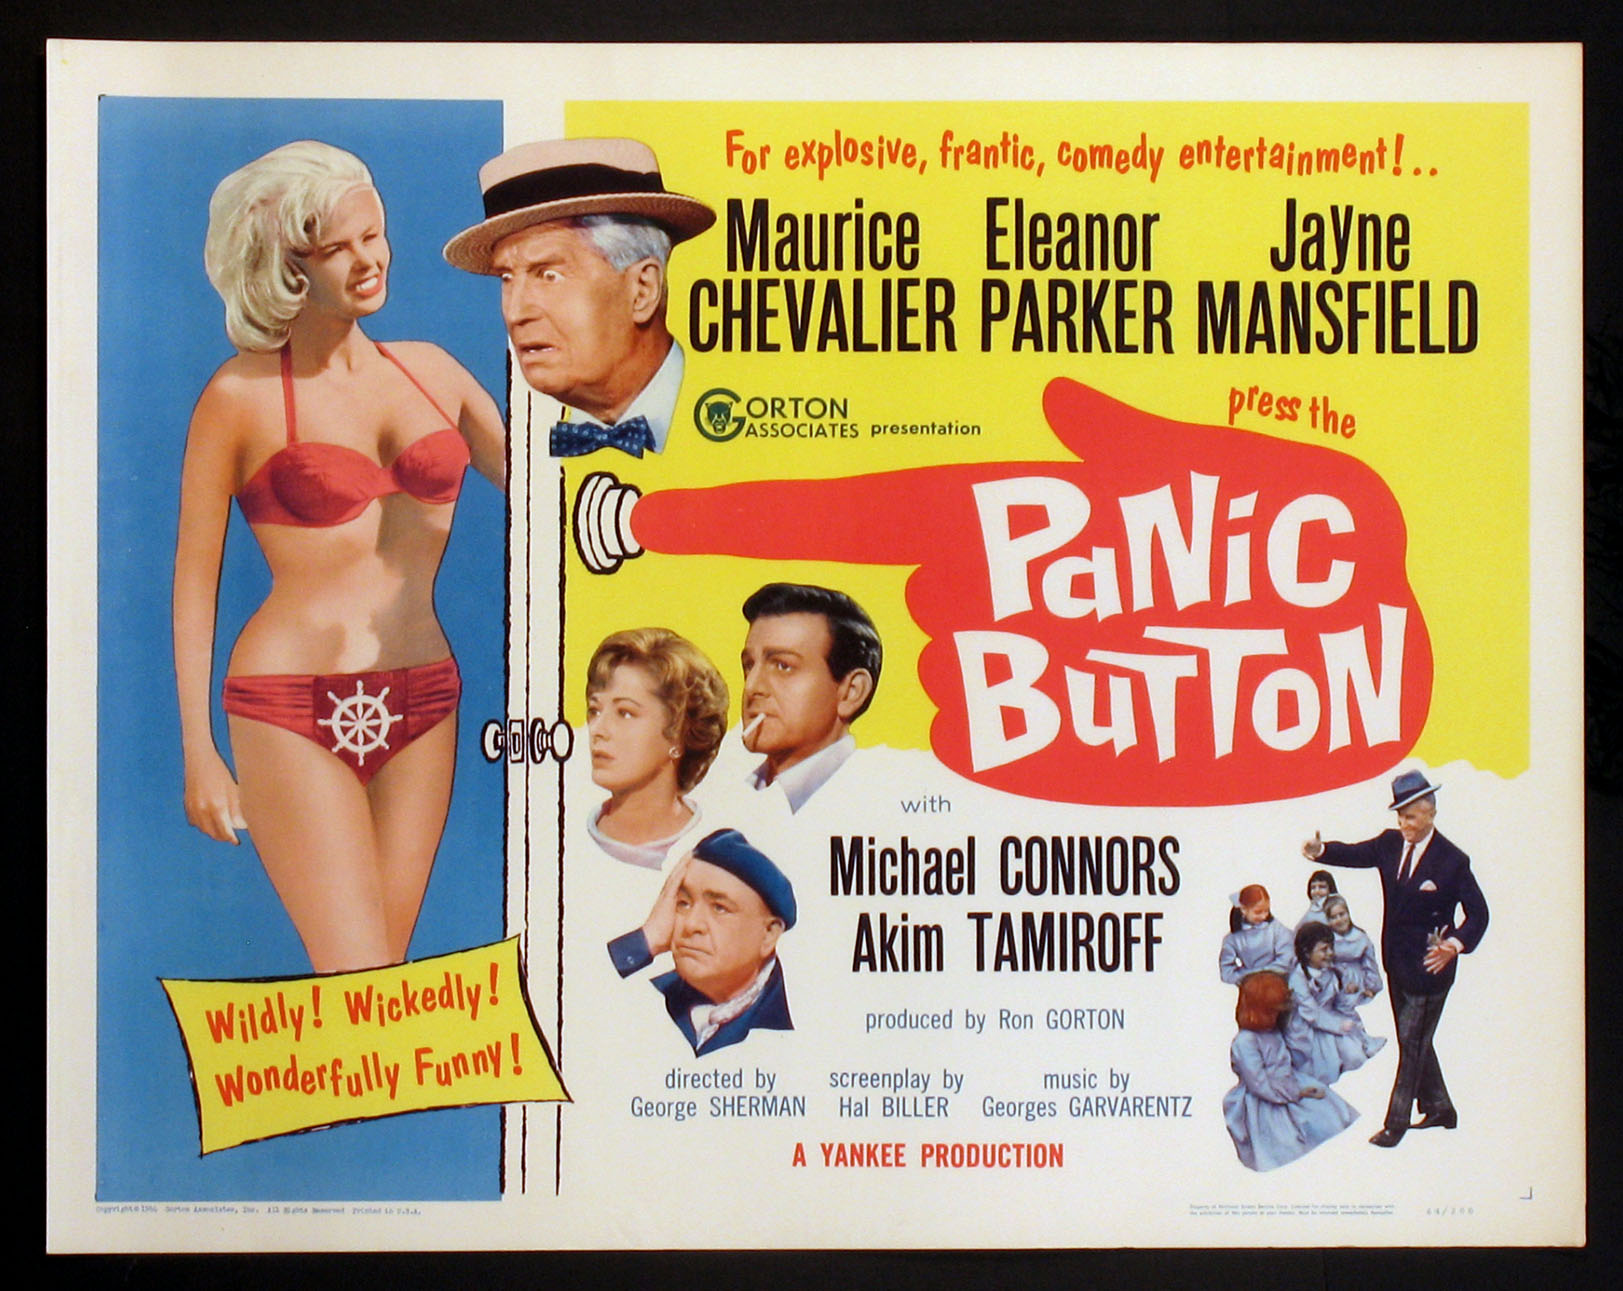 PANIC BUTTON @ FilmPosters.com